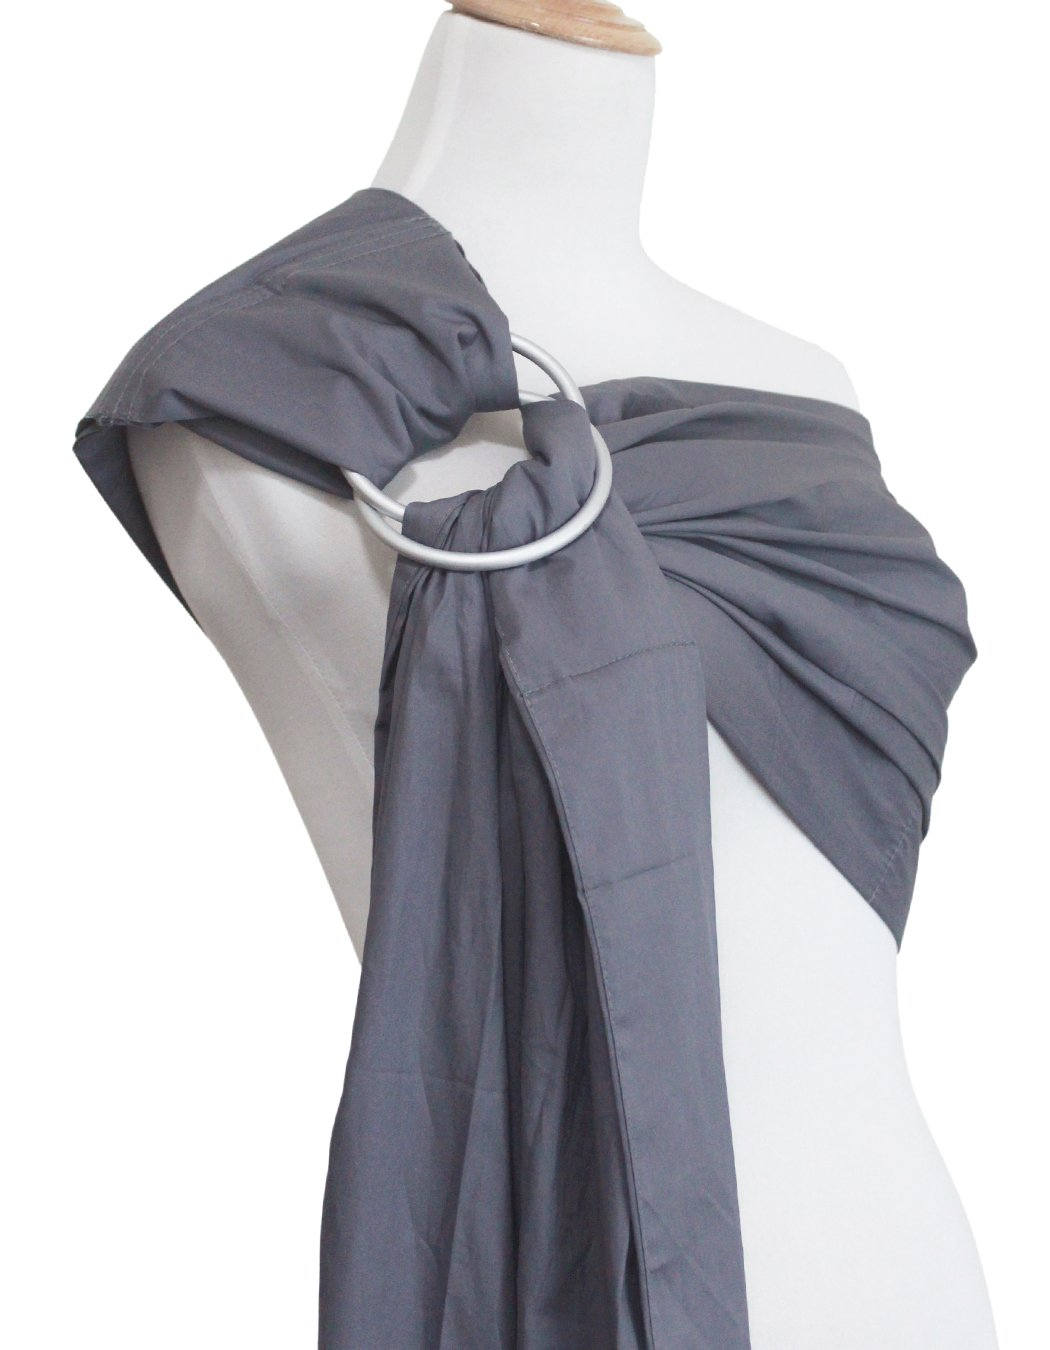 "Vlokup(TM) Wrap Original 100% Cotton Adjustable Baby Carrier Infant Lightly Padded Ring Sling Grey Vlokup 100% natural cotton.Comfortable for newborns up to 18 pounds The baby ring sling makes a deep pocket that allows for a more comfortable fit for baby and a better ""grip"" on baby's legs. Most moms find it with the less slipping problem for squirmy babies. Lightly padded Shoulder portion distributes weight through the torso and avoids straining the neck. Lightly padded railings provide the right amount of cushioning for baby's tender thighs, with no sharp edge cutting into flesh. Vlokup sling carrier has no overheating problem for baby and mother which is perfect for hot weather. 5"